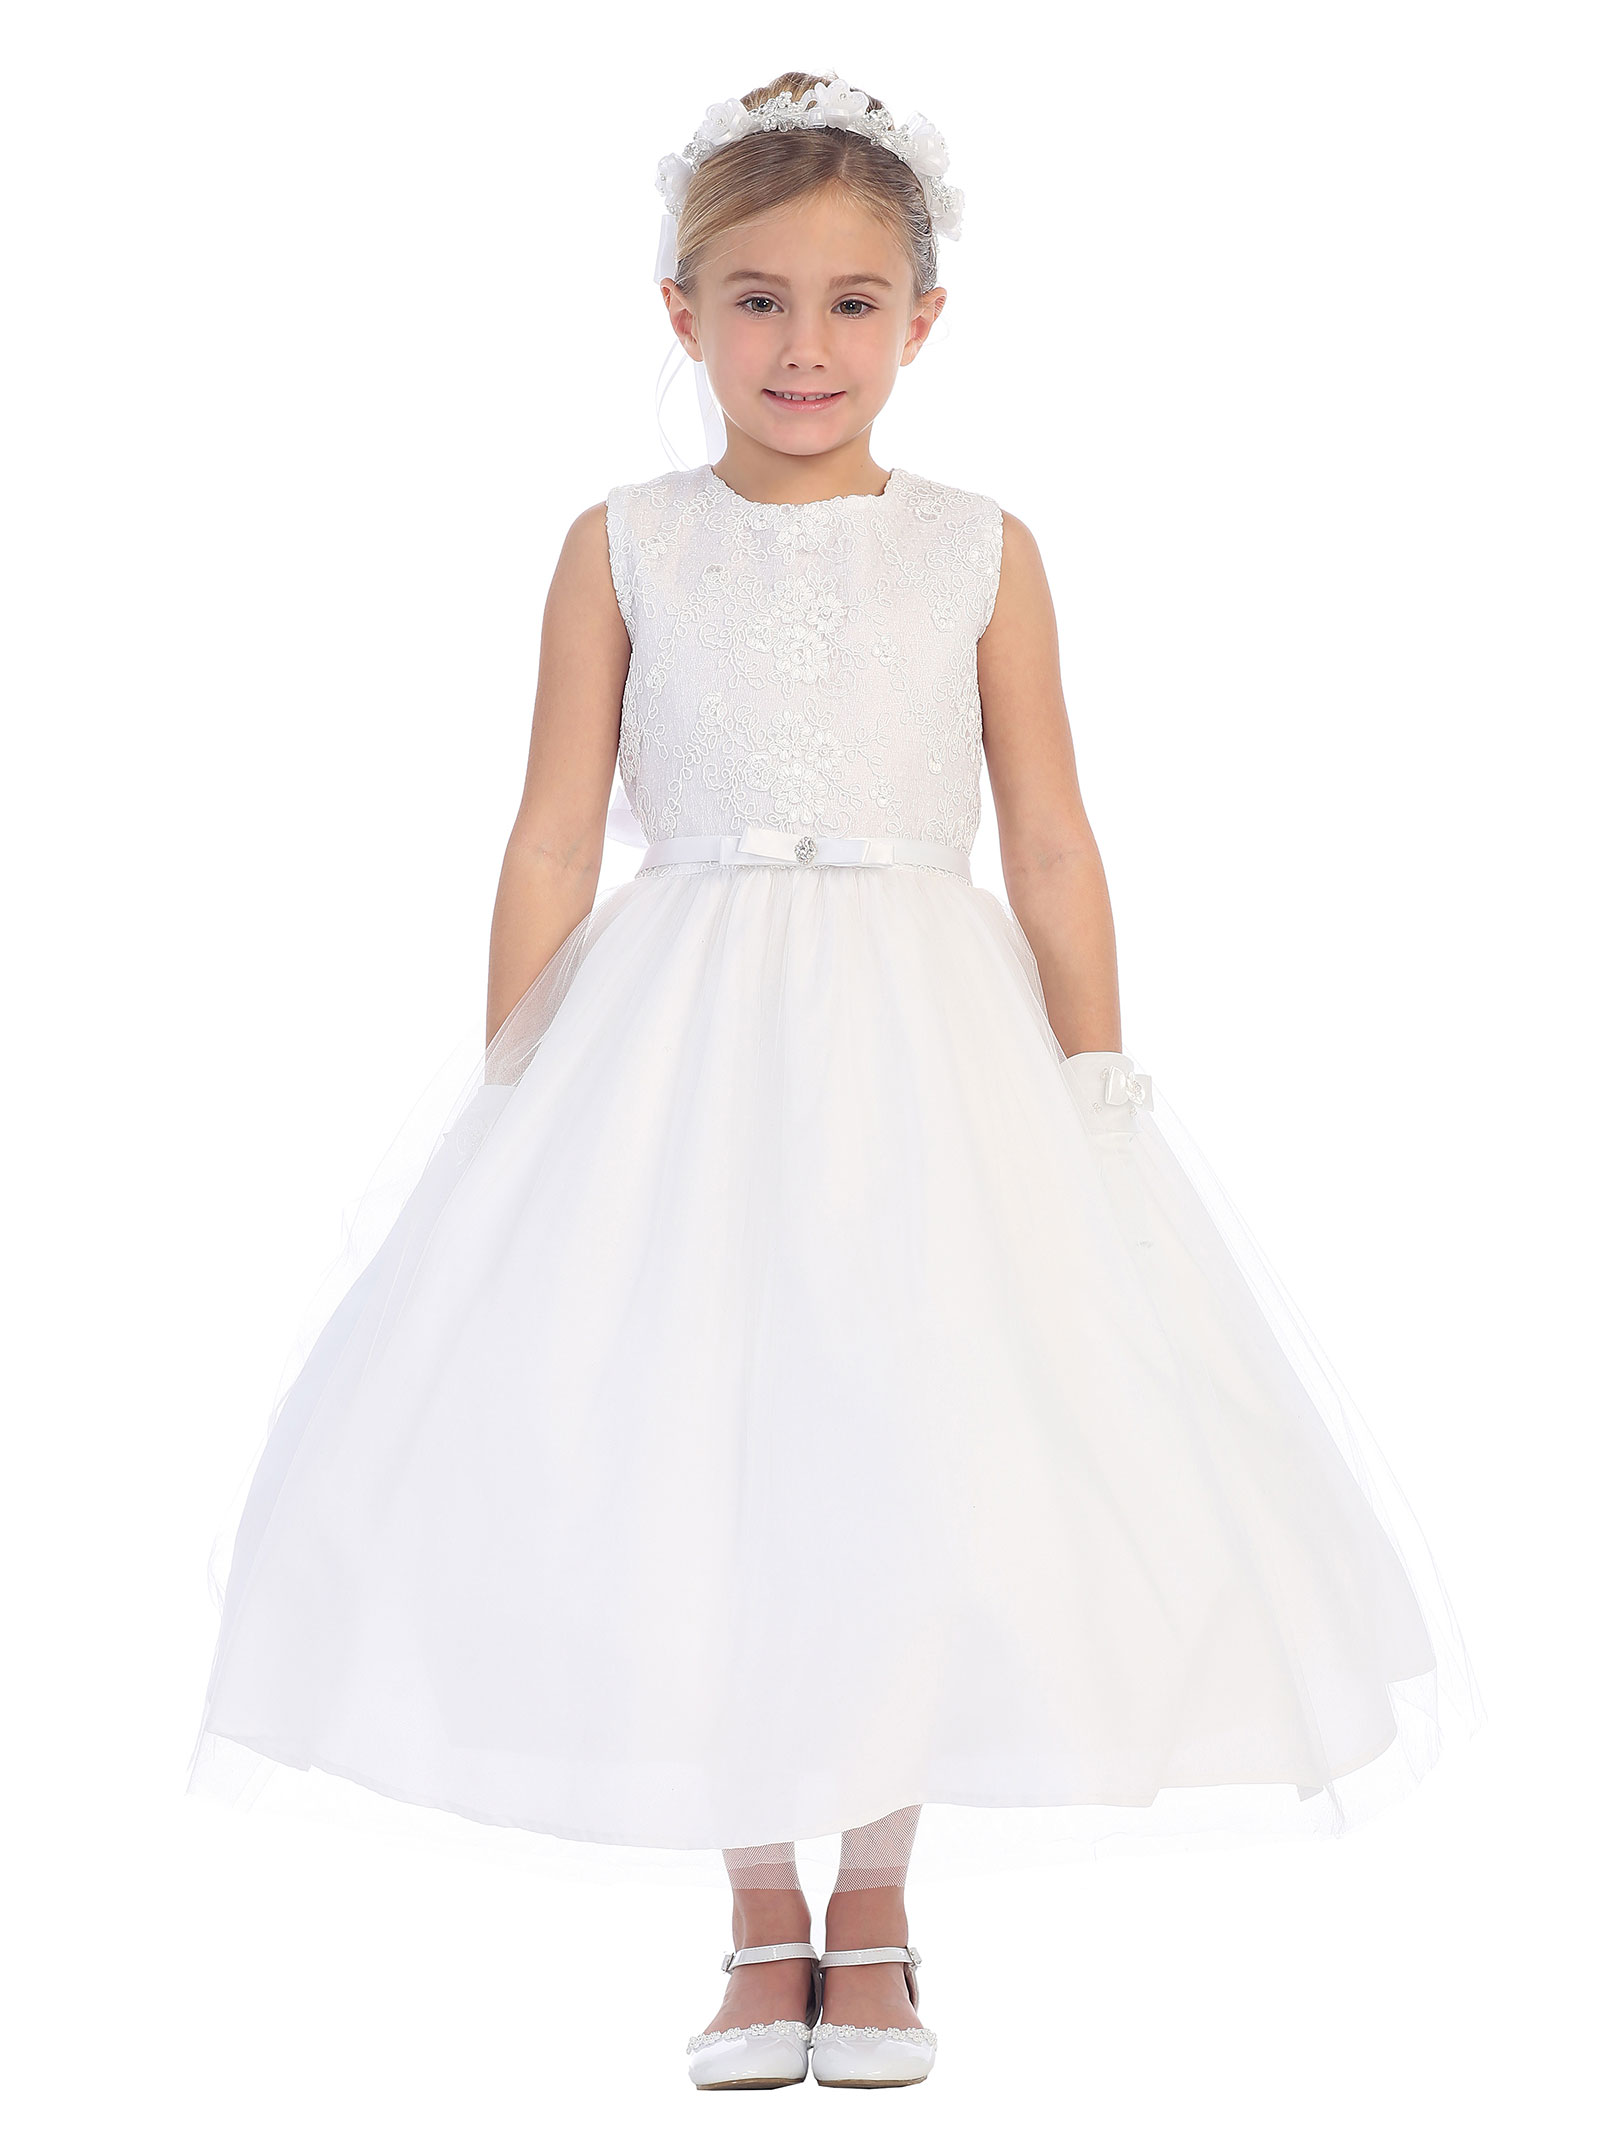 TT 5690W Girls Dress Style 5690 Sleeveless Lace and Tulle Dress In Choice